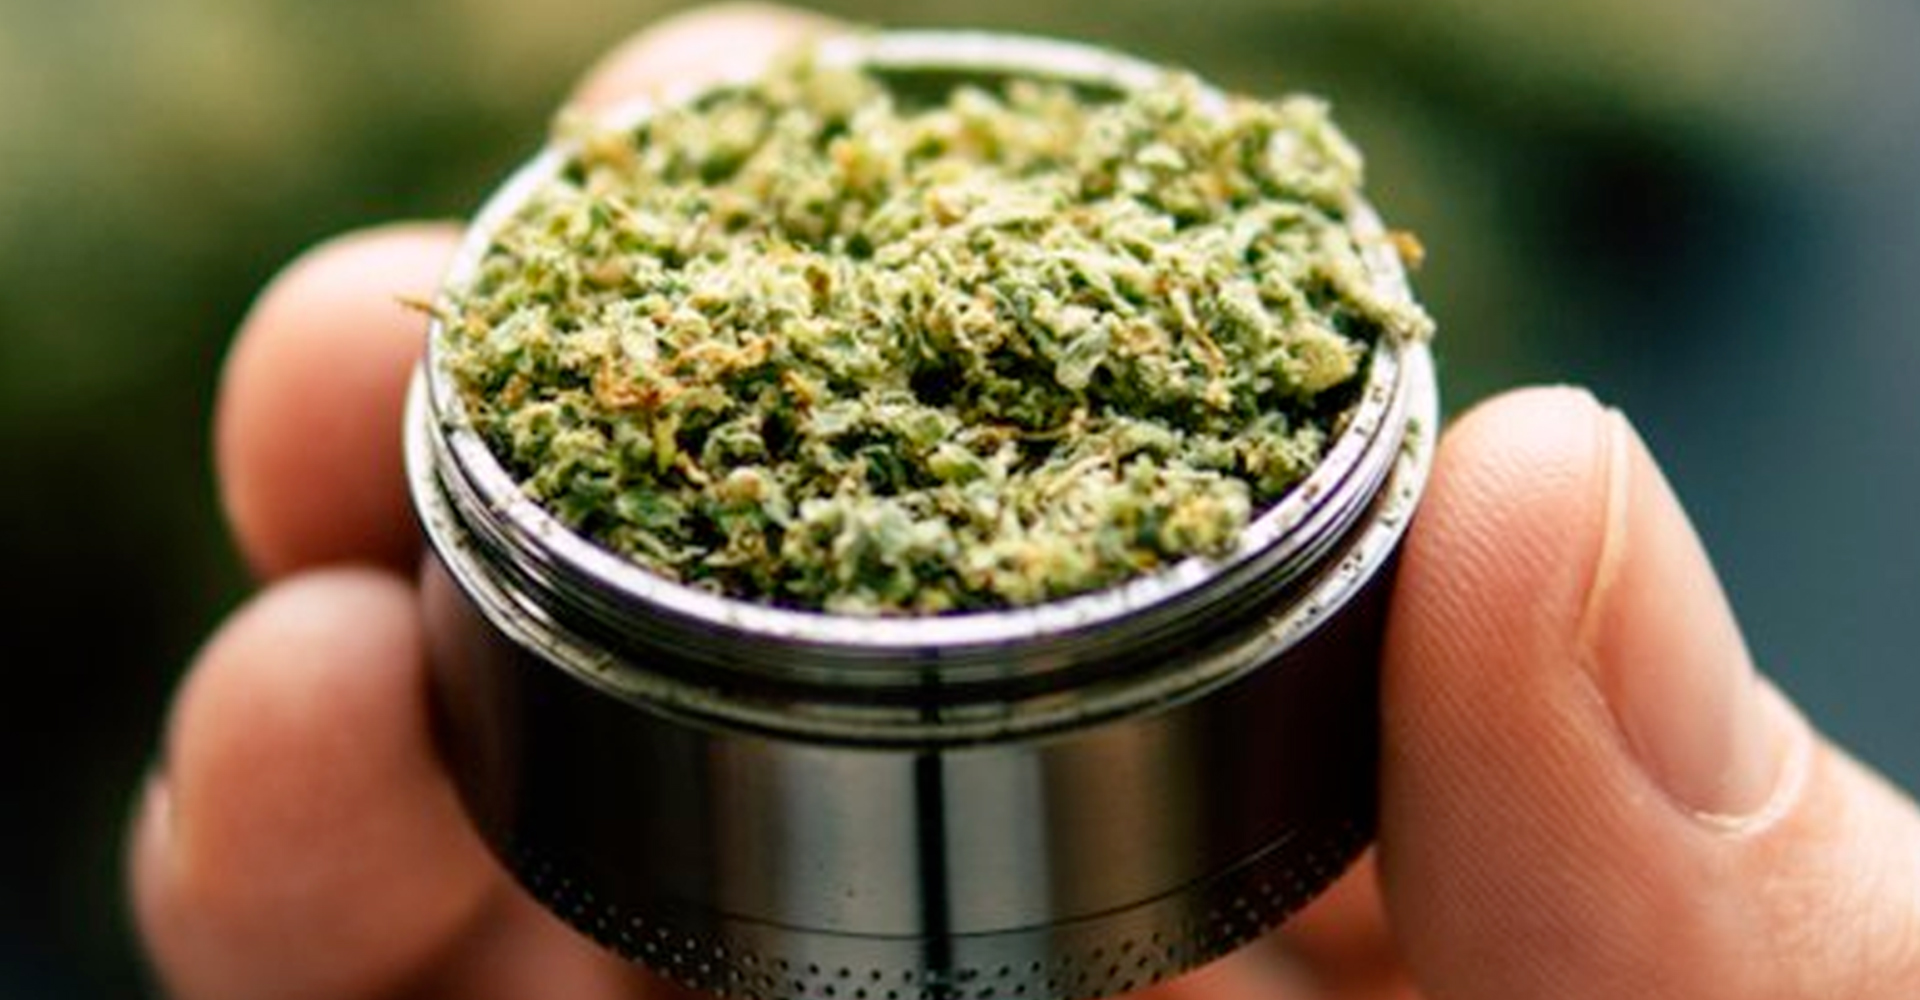 marijuana hemp in grinder